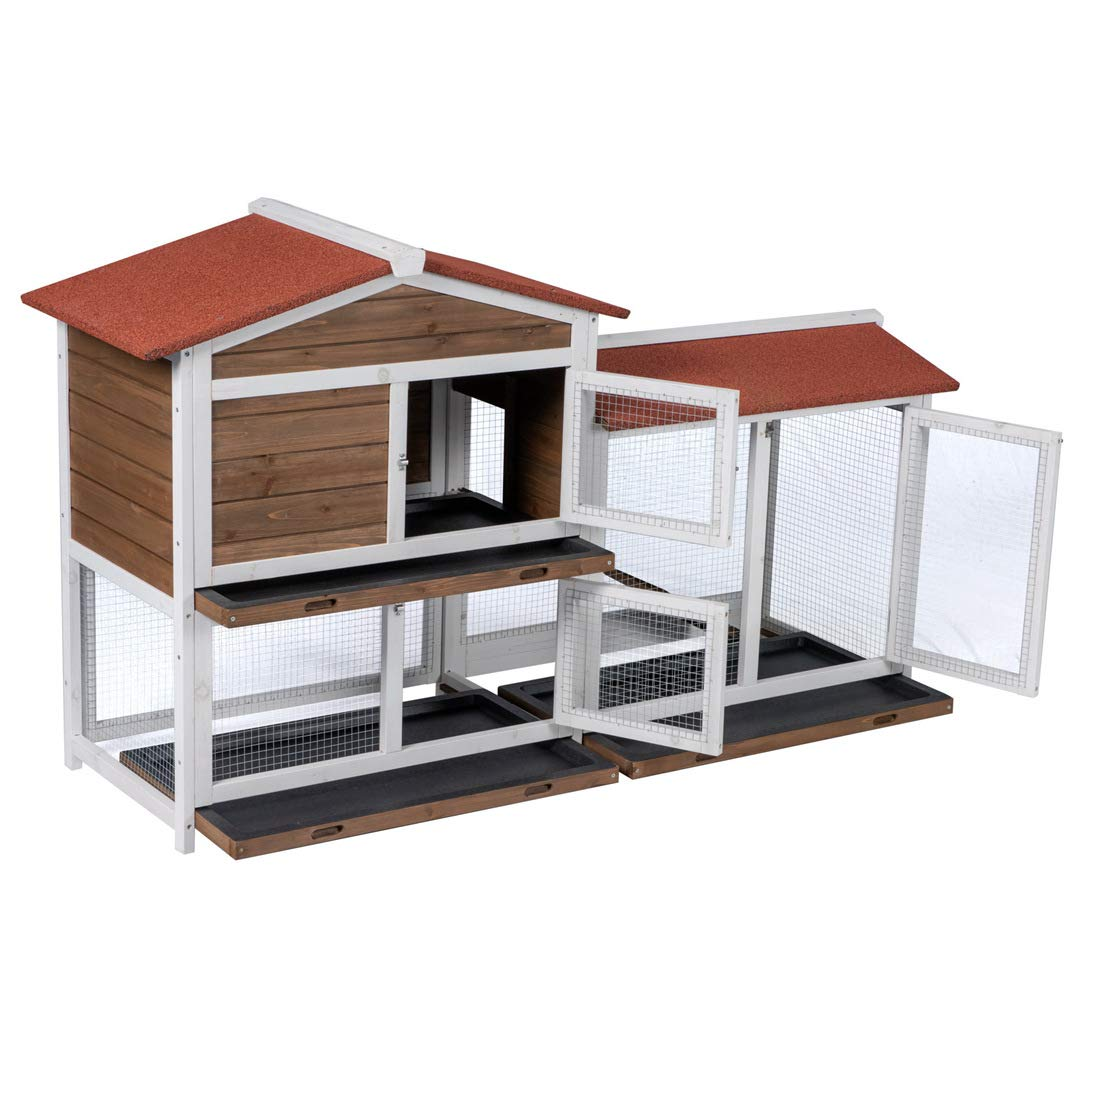 Good Life Two Floors Wooden Outdoor Indoor Roof Waterproof Bunny Hutch Rabbit Cage Guinea Pig Coop PET House for Small to Middle Animals with Stairs and 3 Cleaning Tray by GOOD LIFE USA (Image #3)